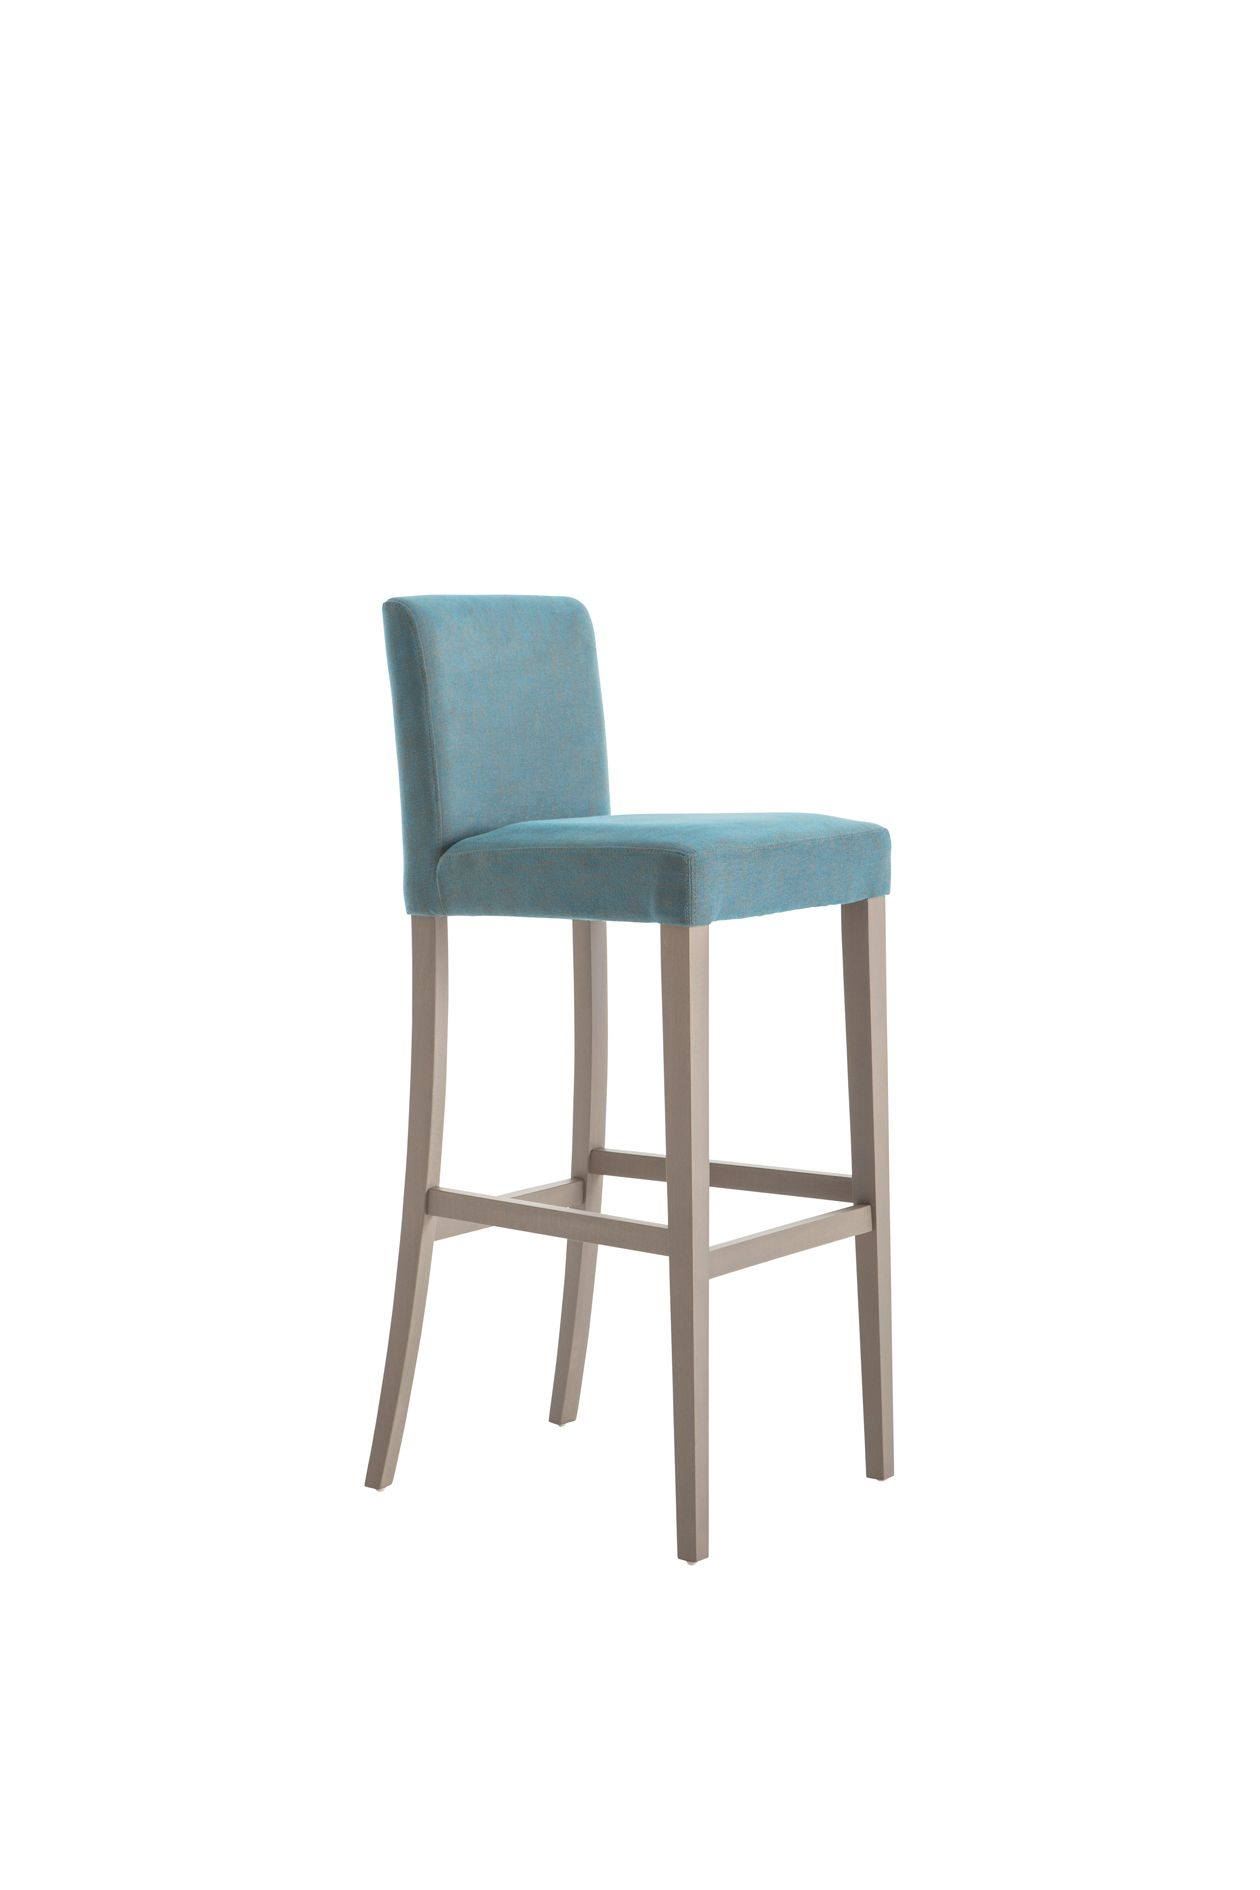 Lady Bar Stool 470gi Upholstered Stax Chairs